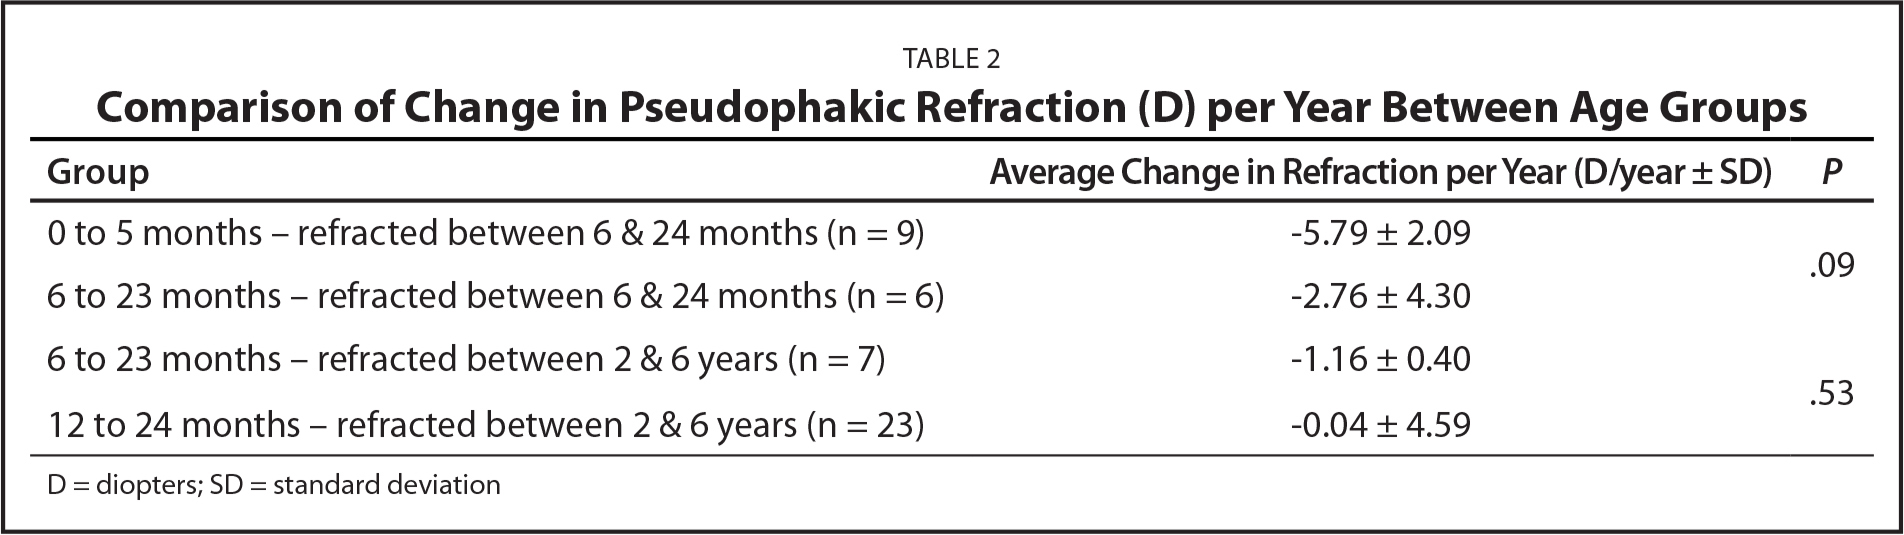 Comparison of Change in Pseudophakic Refraction (D) per Year Between Age Groups